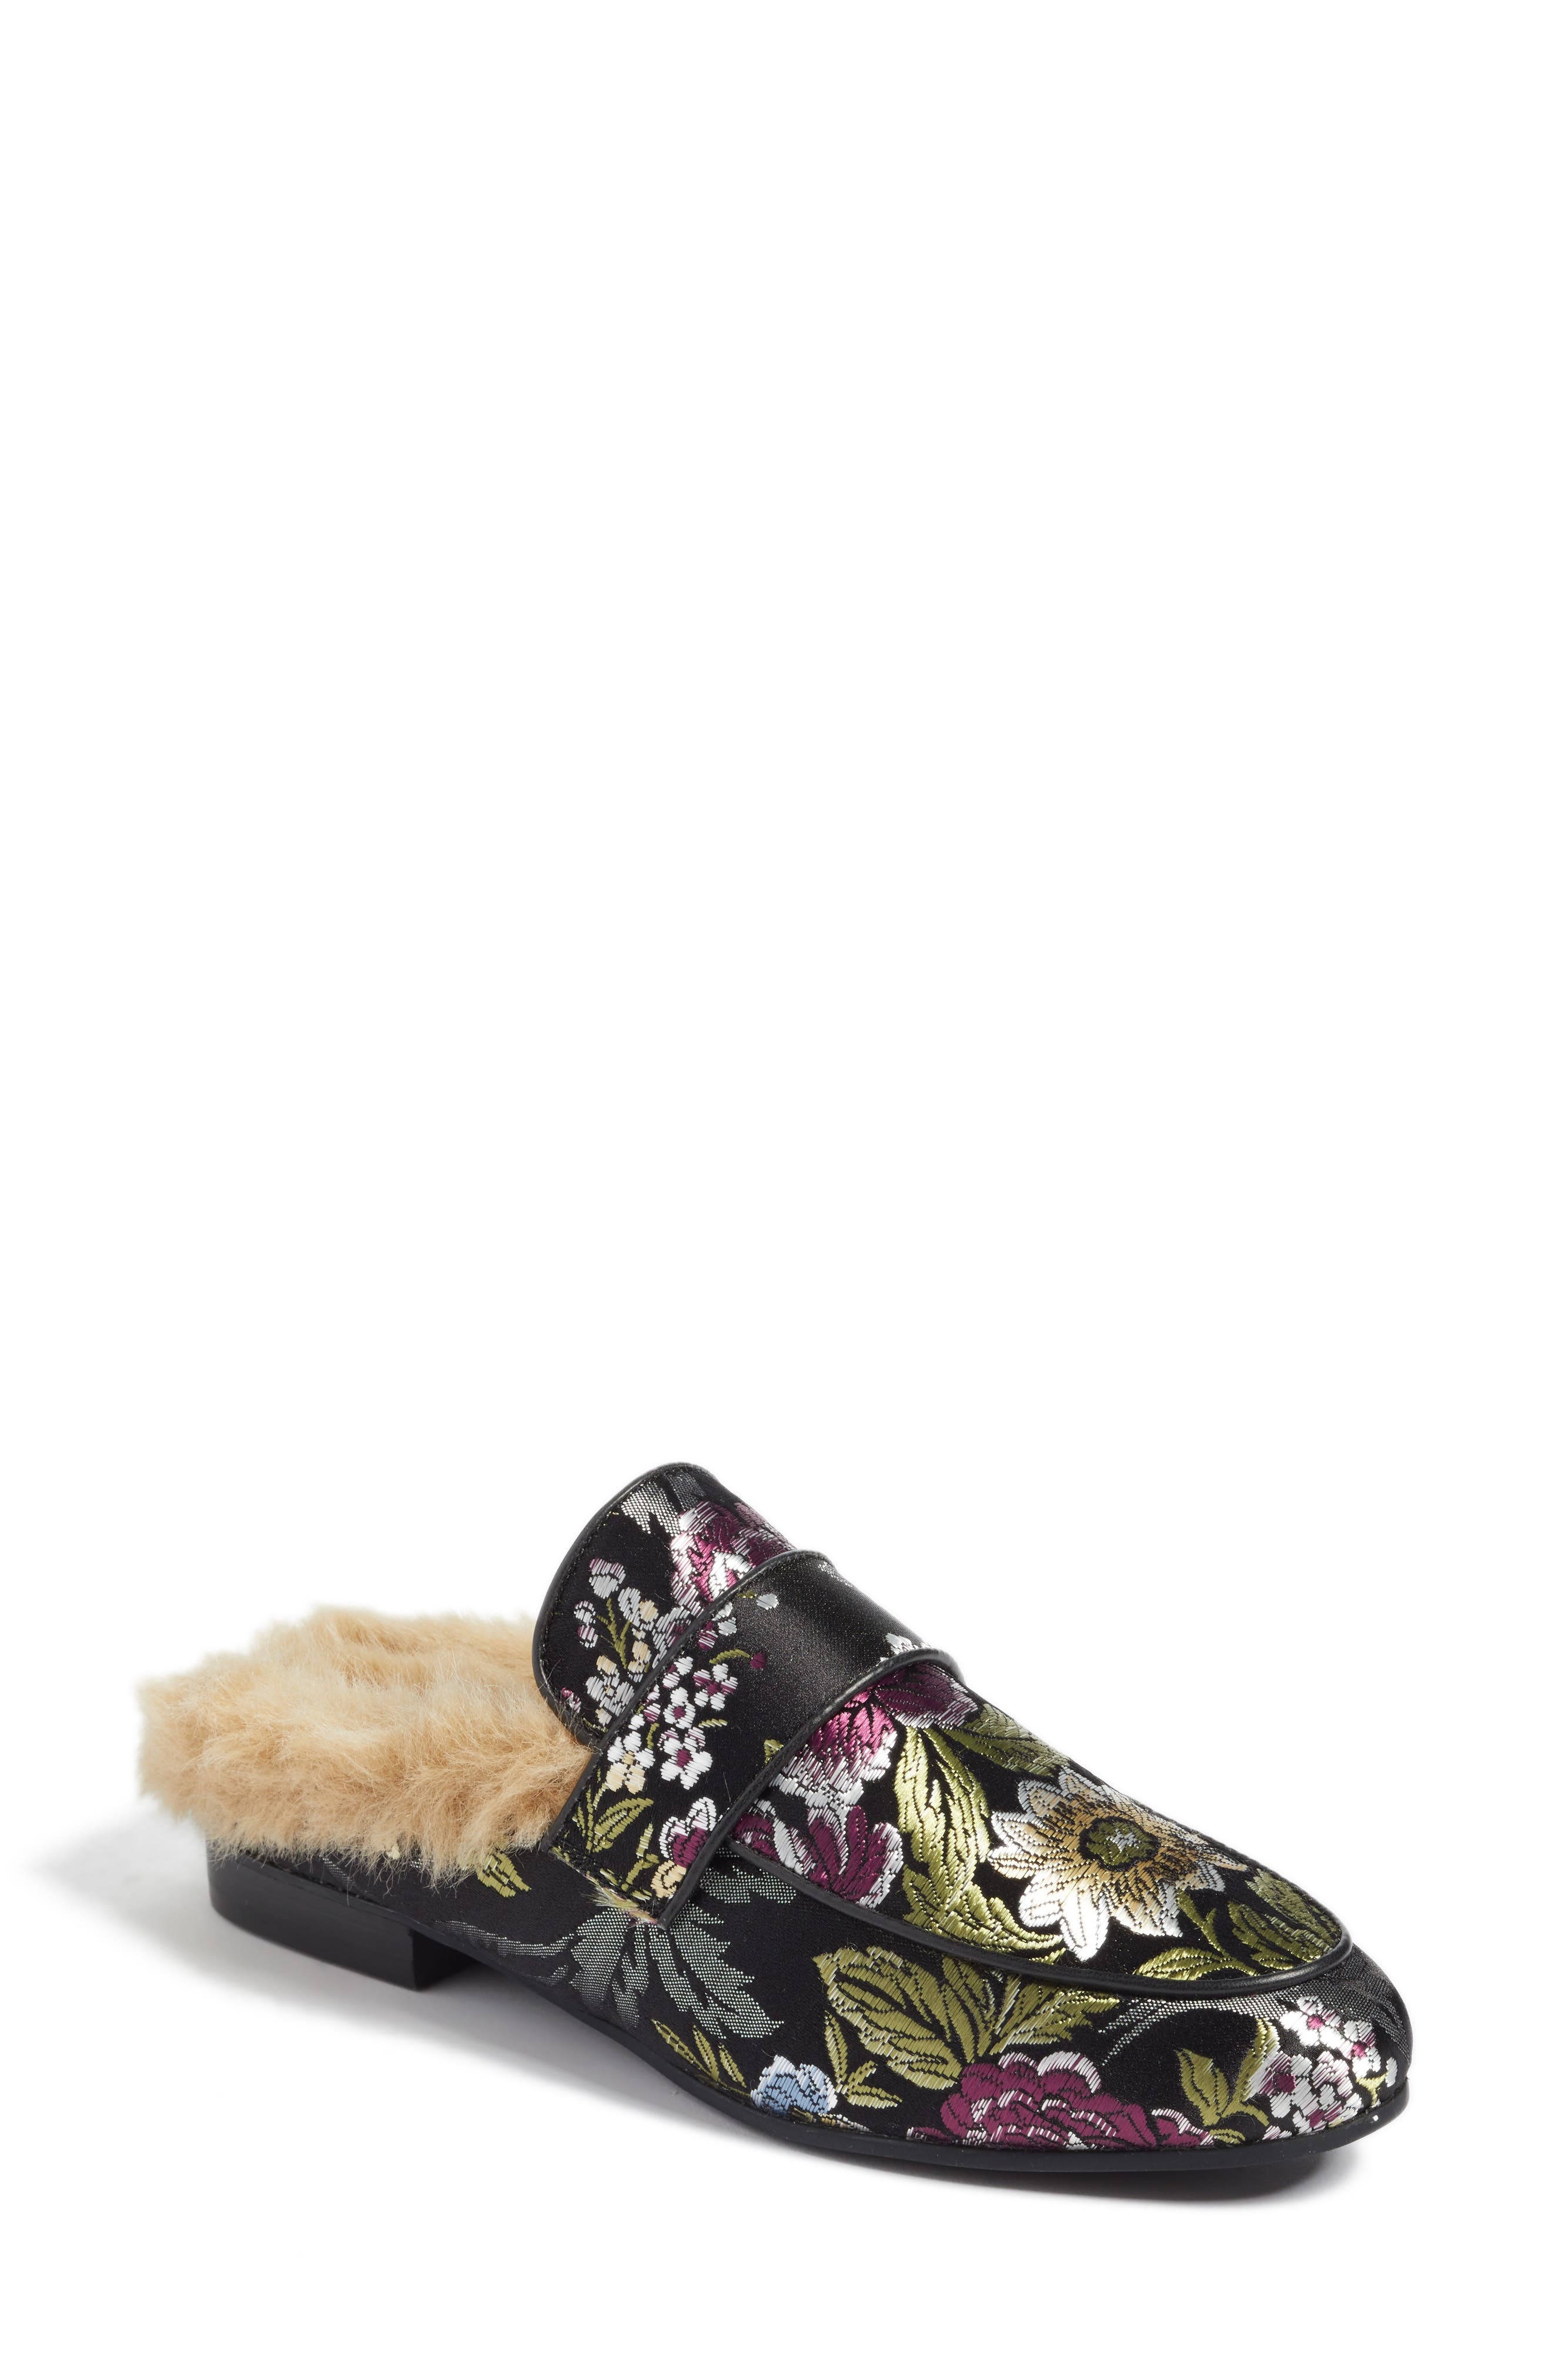 Kaden Mule,                         Main,                         color, Black Floral Fabric